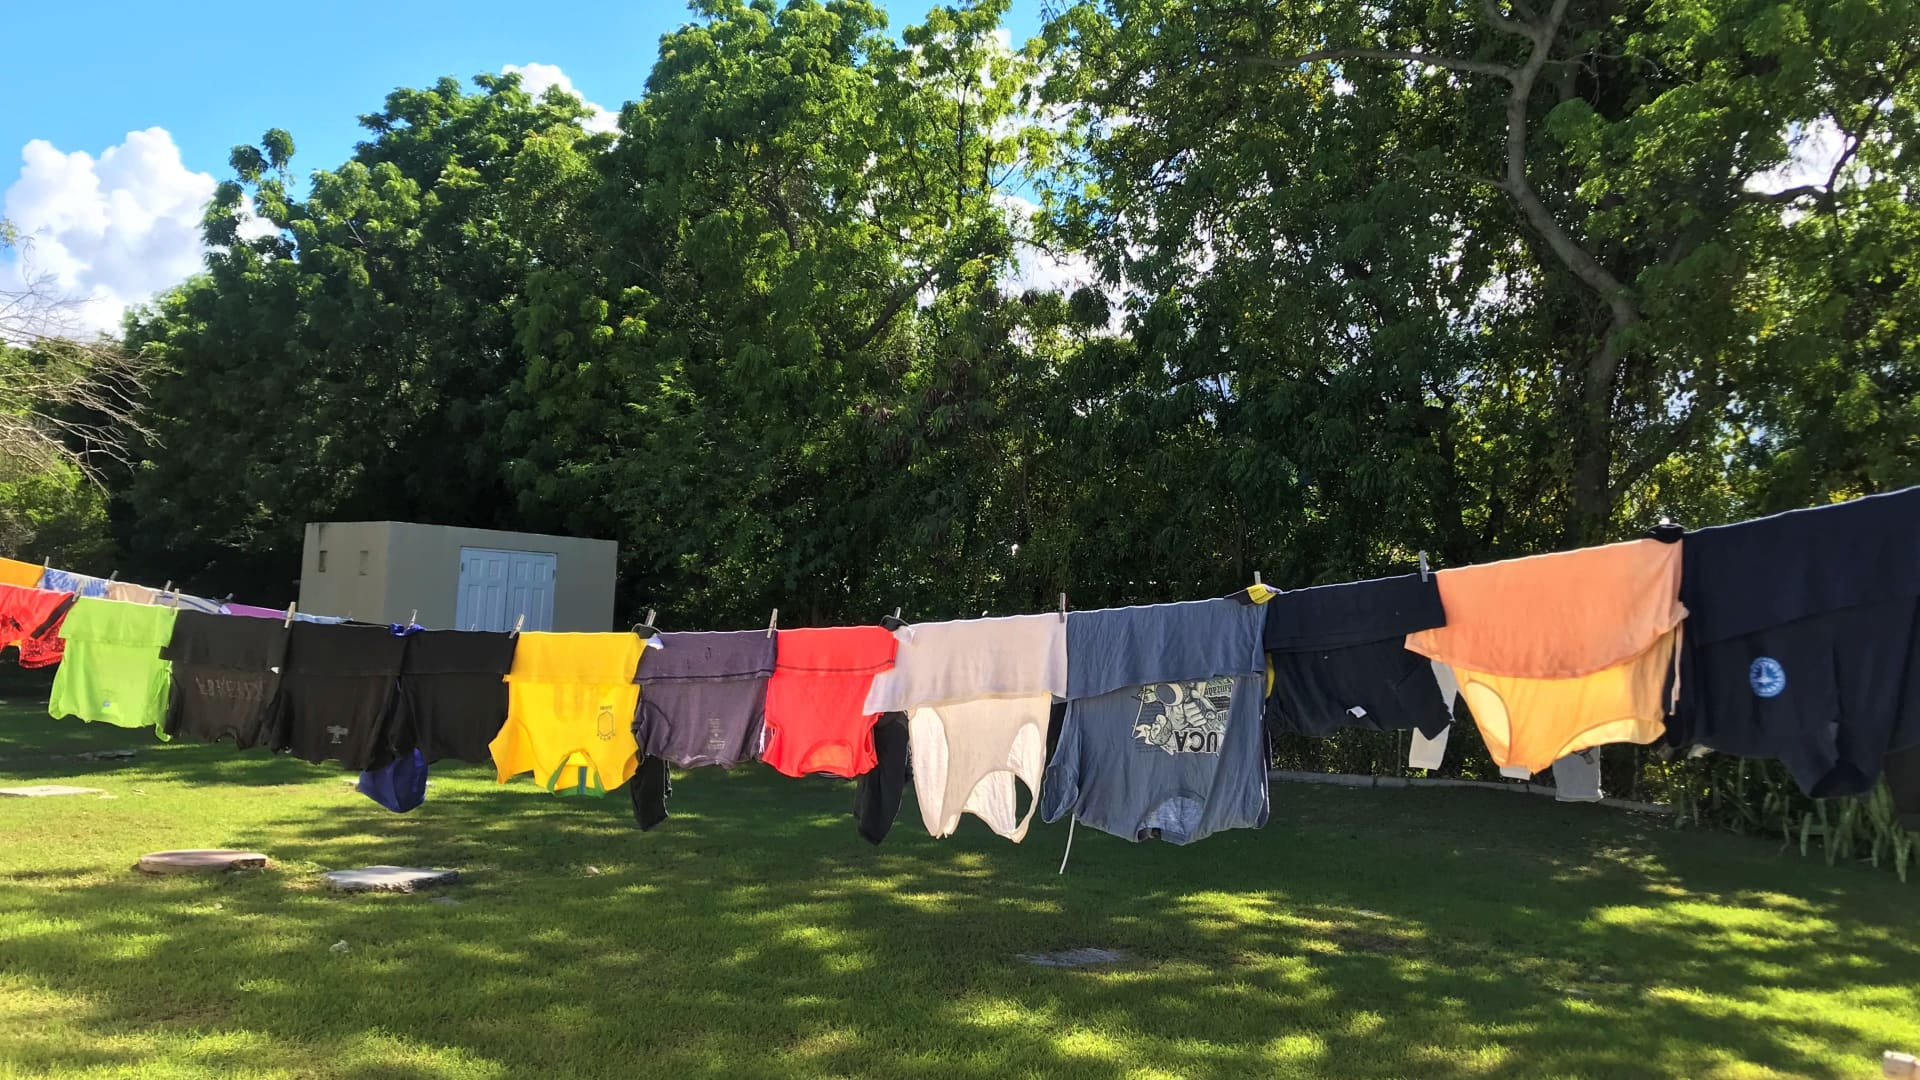 Freshly washed clothes dried in the breeze smell amazing!